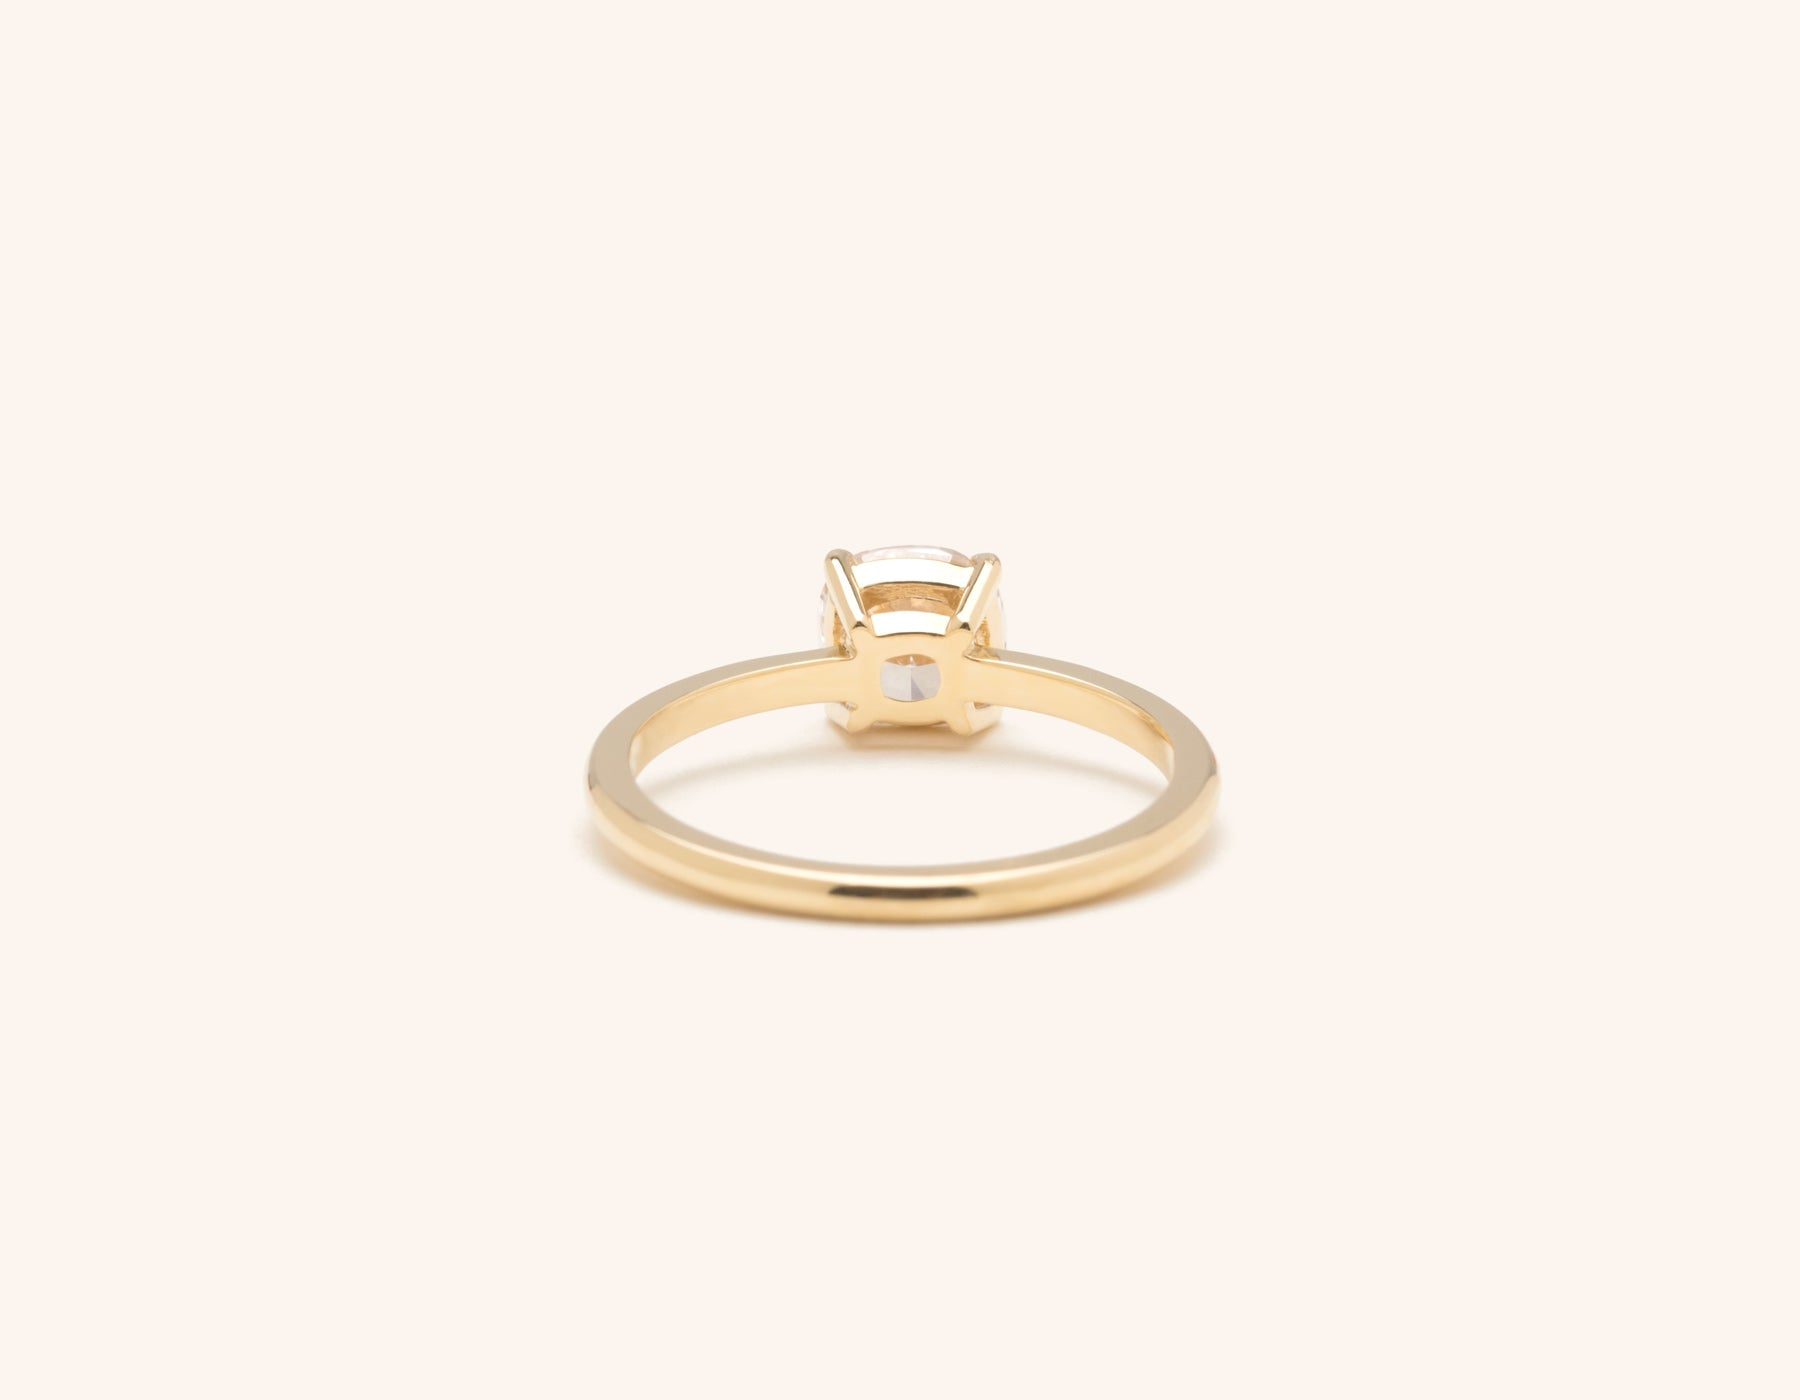 Vrai & Oro 18k solid yellow gold Diamond engagement ring The Cushion simple classic band